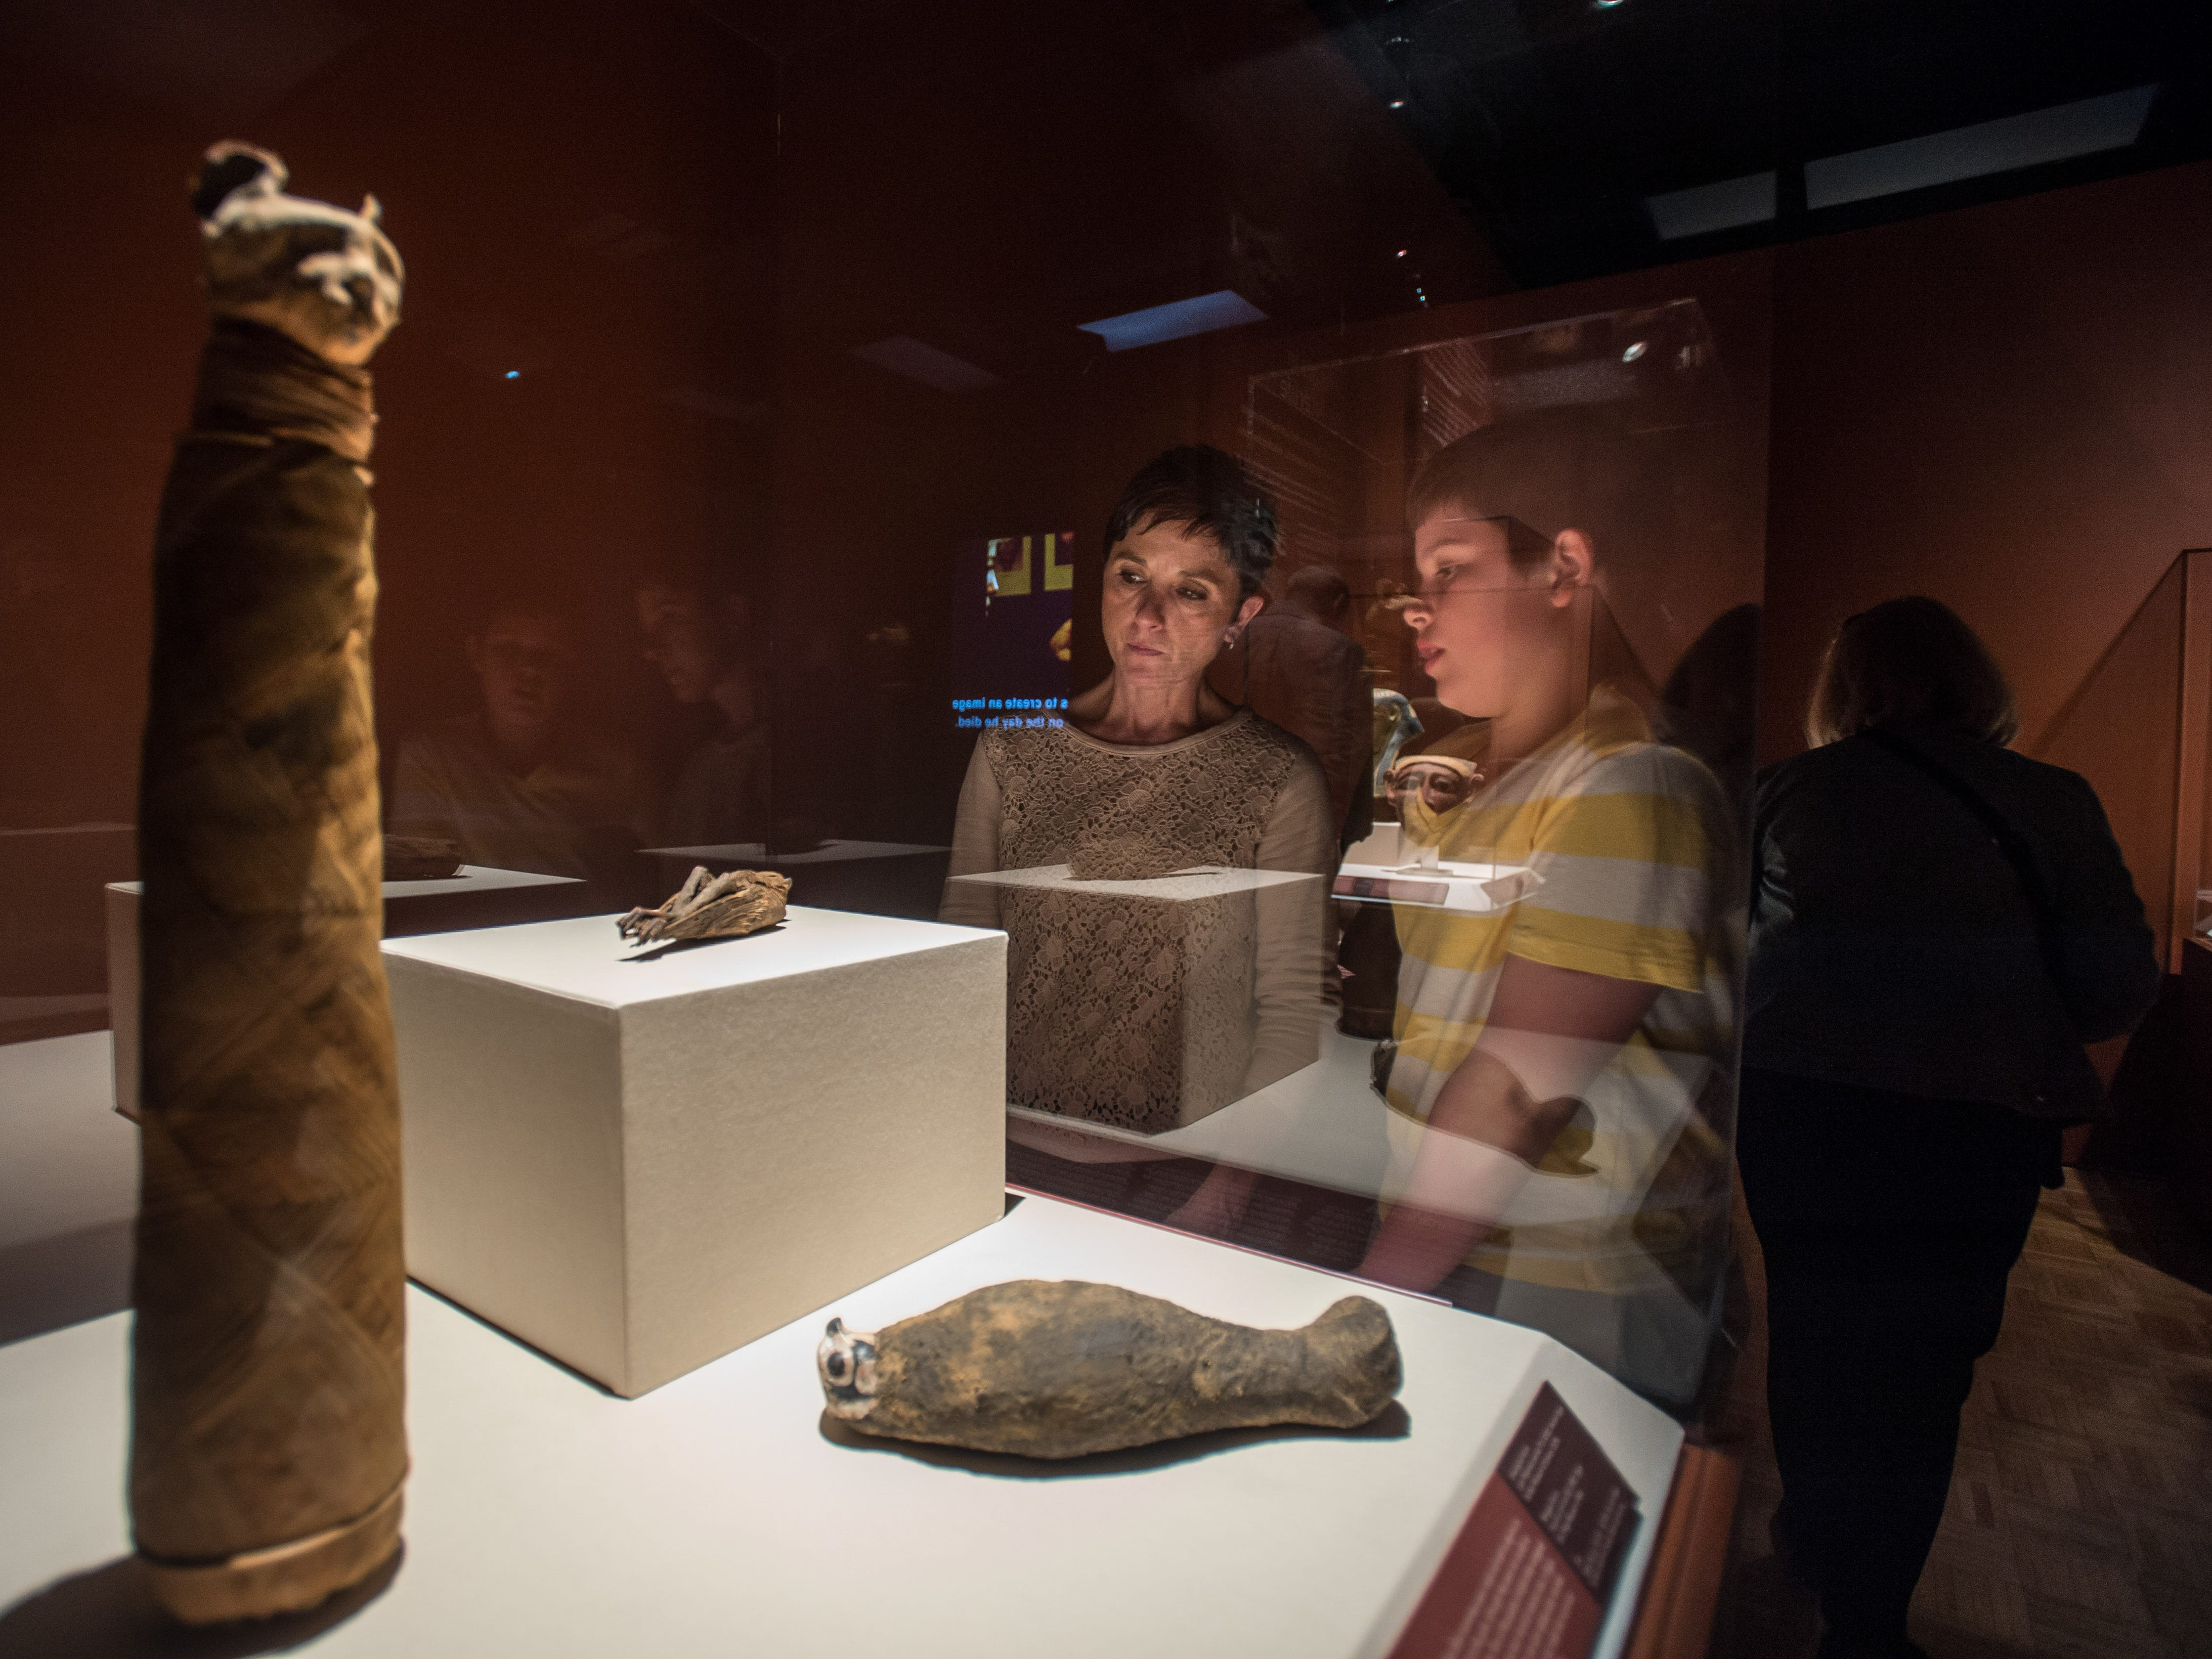 Onlookers examine animal mummies as they make their way through the Mummies of the World: The Exhibition at the Arizona Science Center.